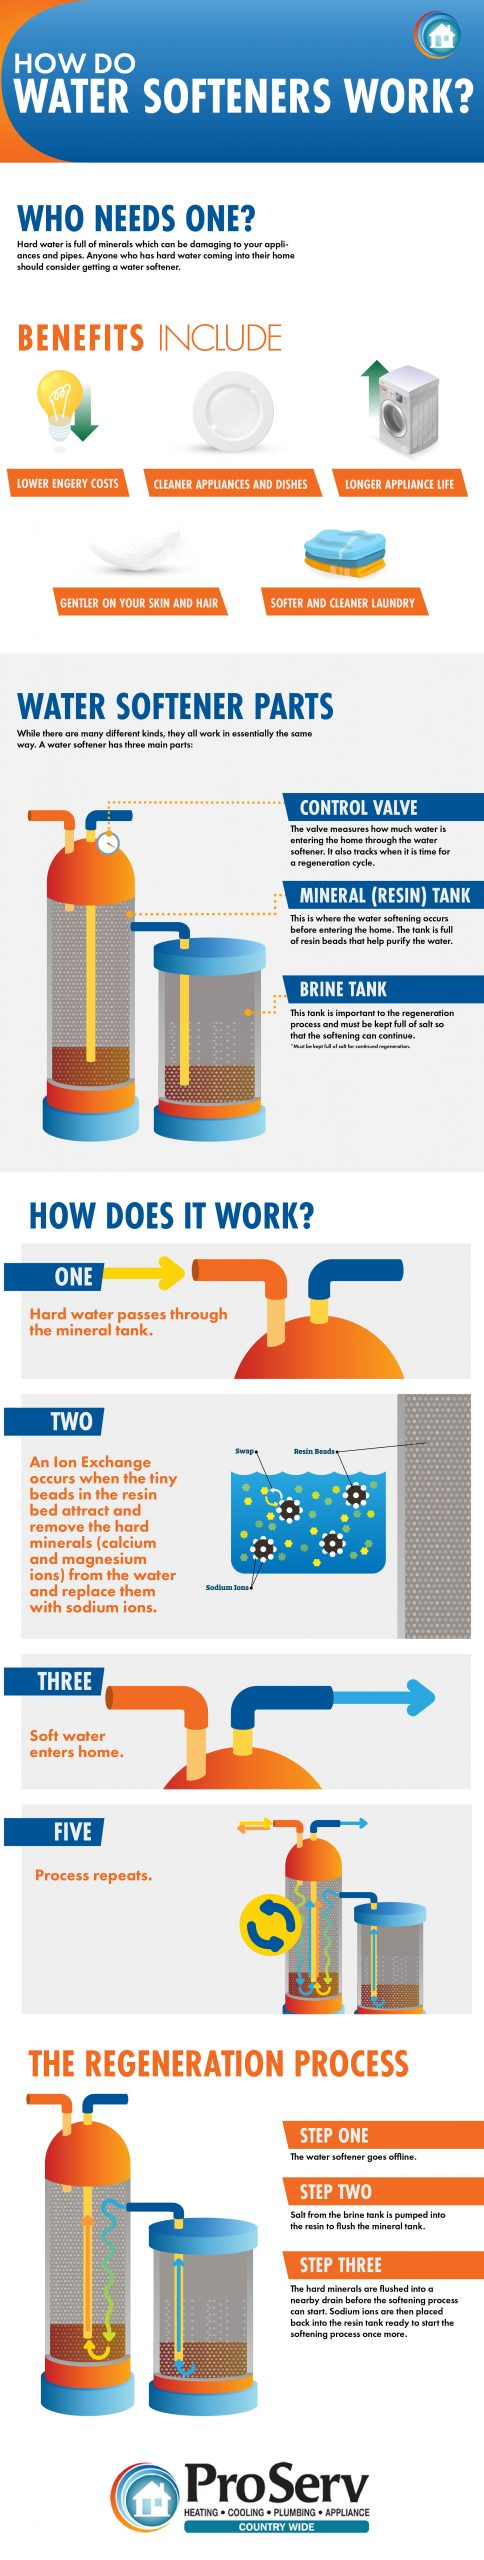 how does a water softener work infographic